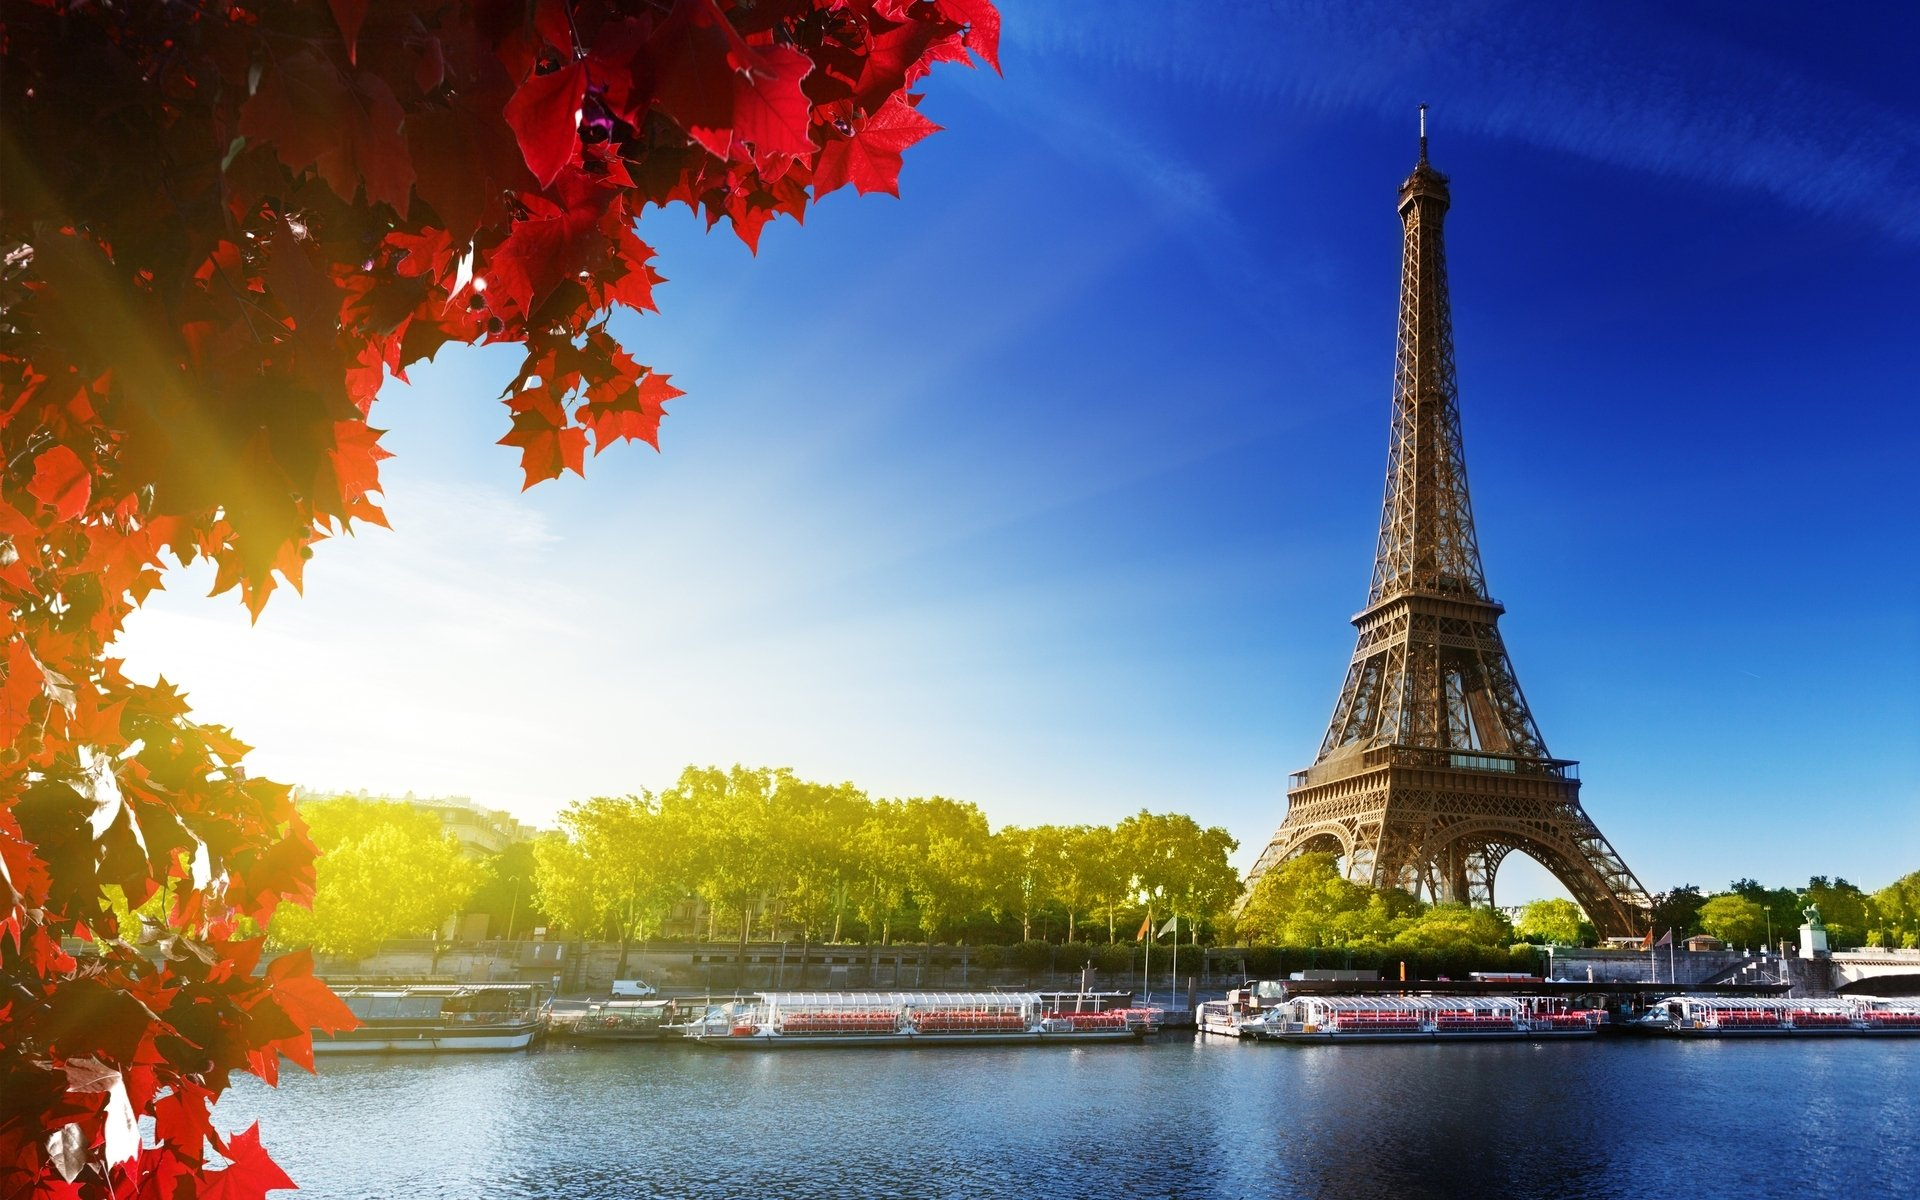 248 Tour Eiffel Fonds D Ecran Hd Arriere Plans Wallpaper Abyss